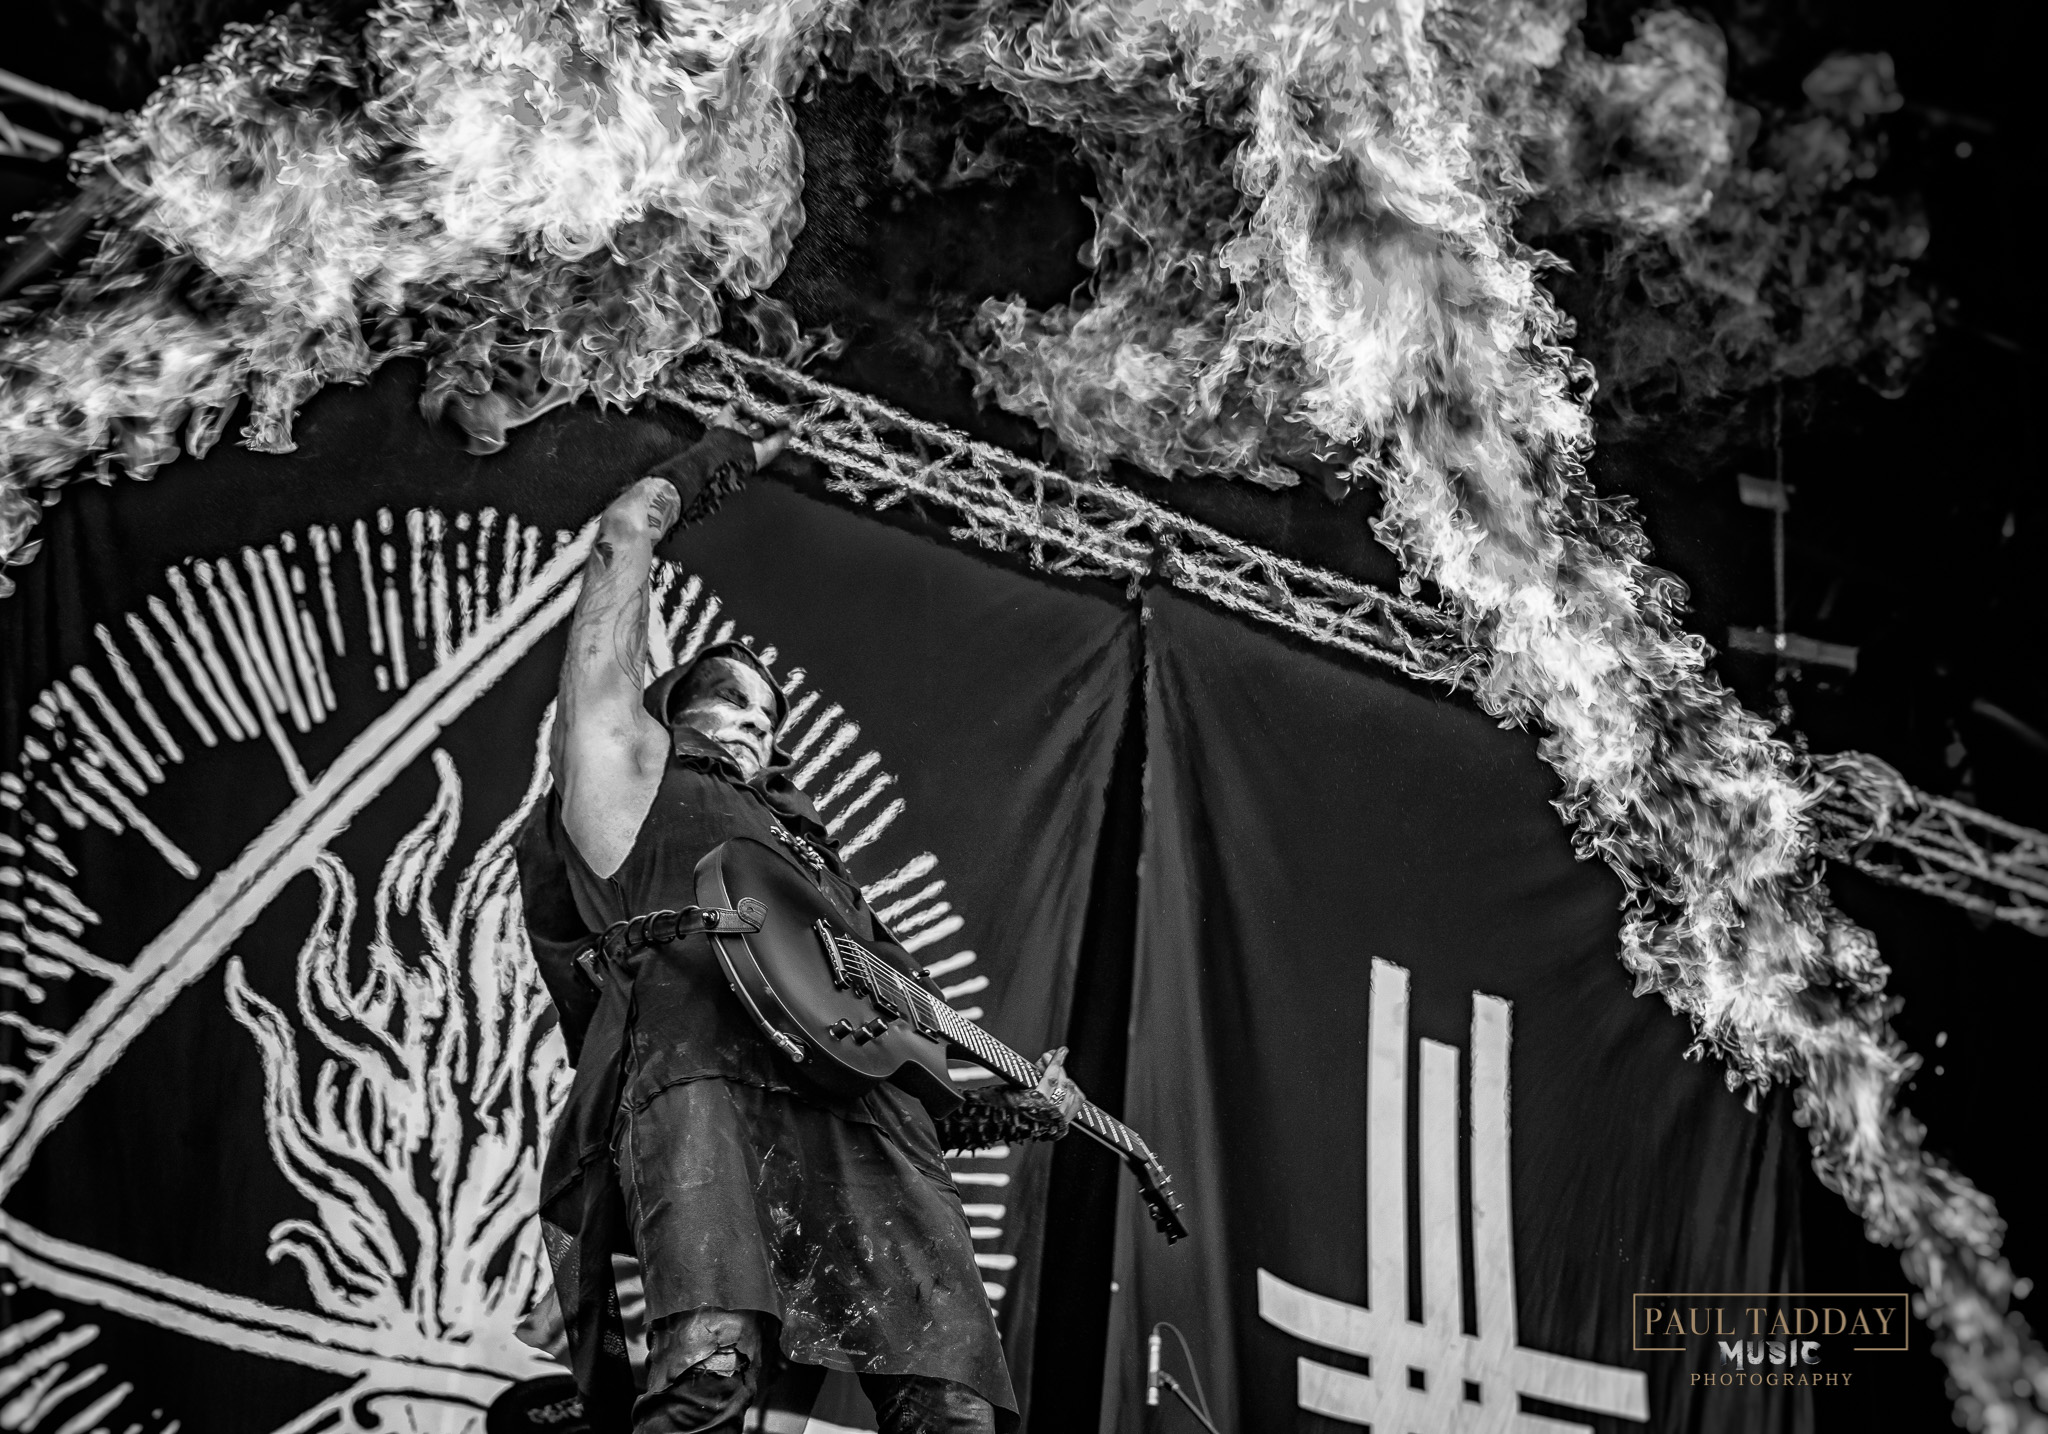 behemoth - download melbourne - march 2019 - web - paul tadday photography - 23.jpg